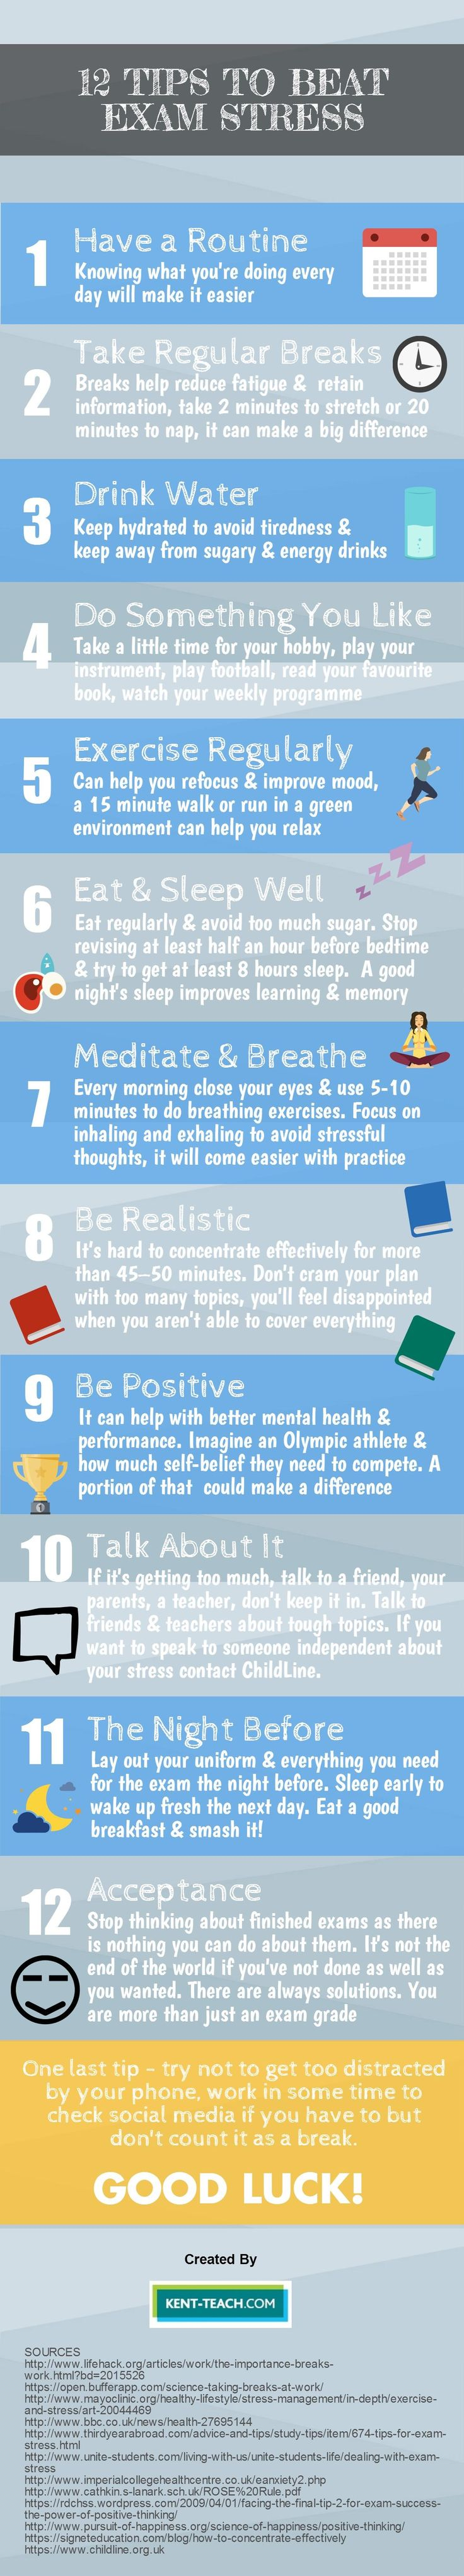 You could get the best out of your students if they follow these 12 tips to beat exam stress!